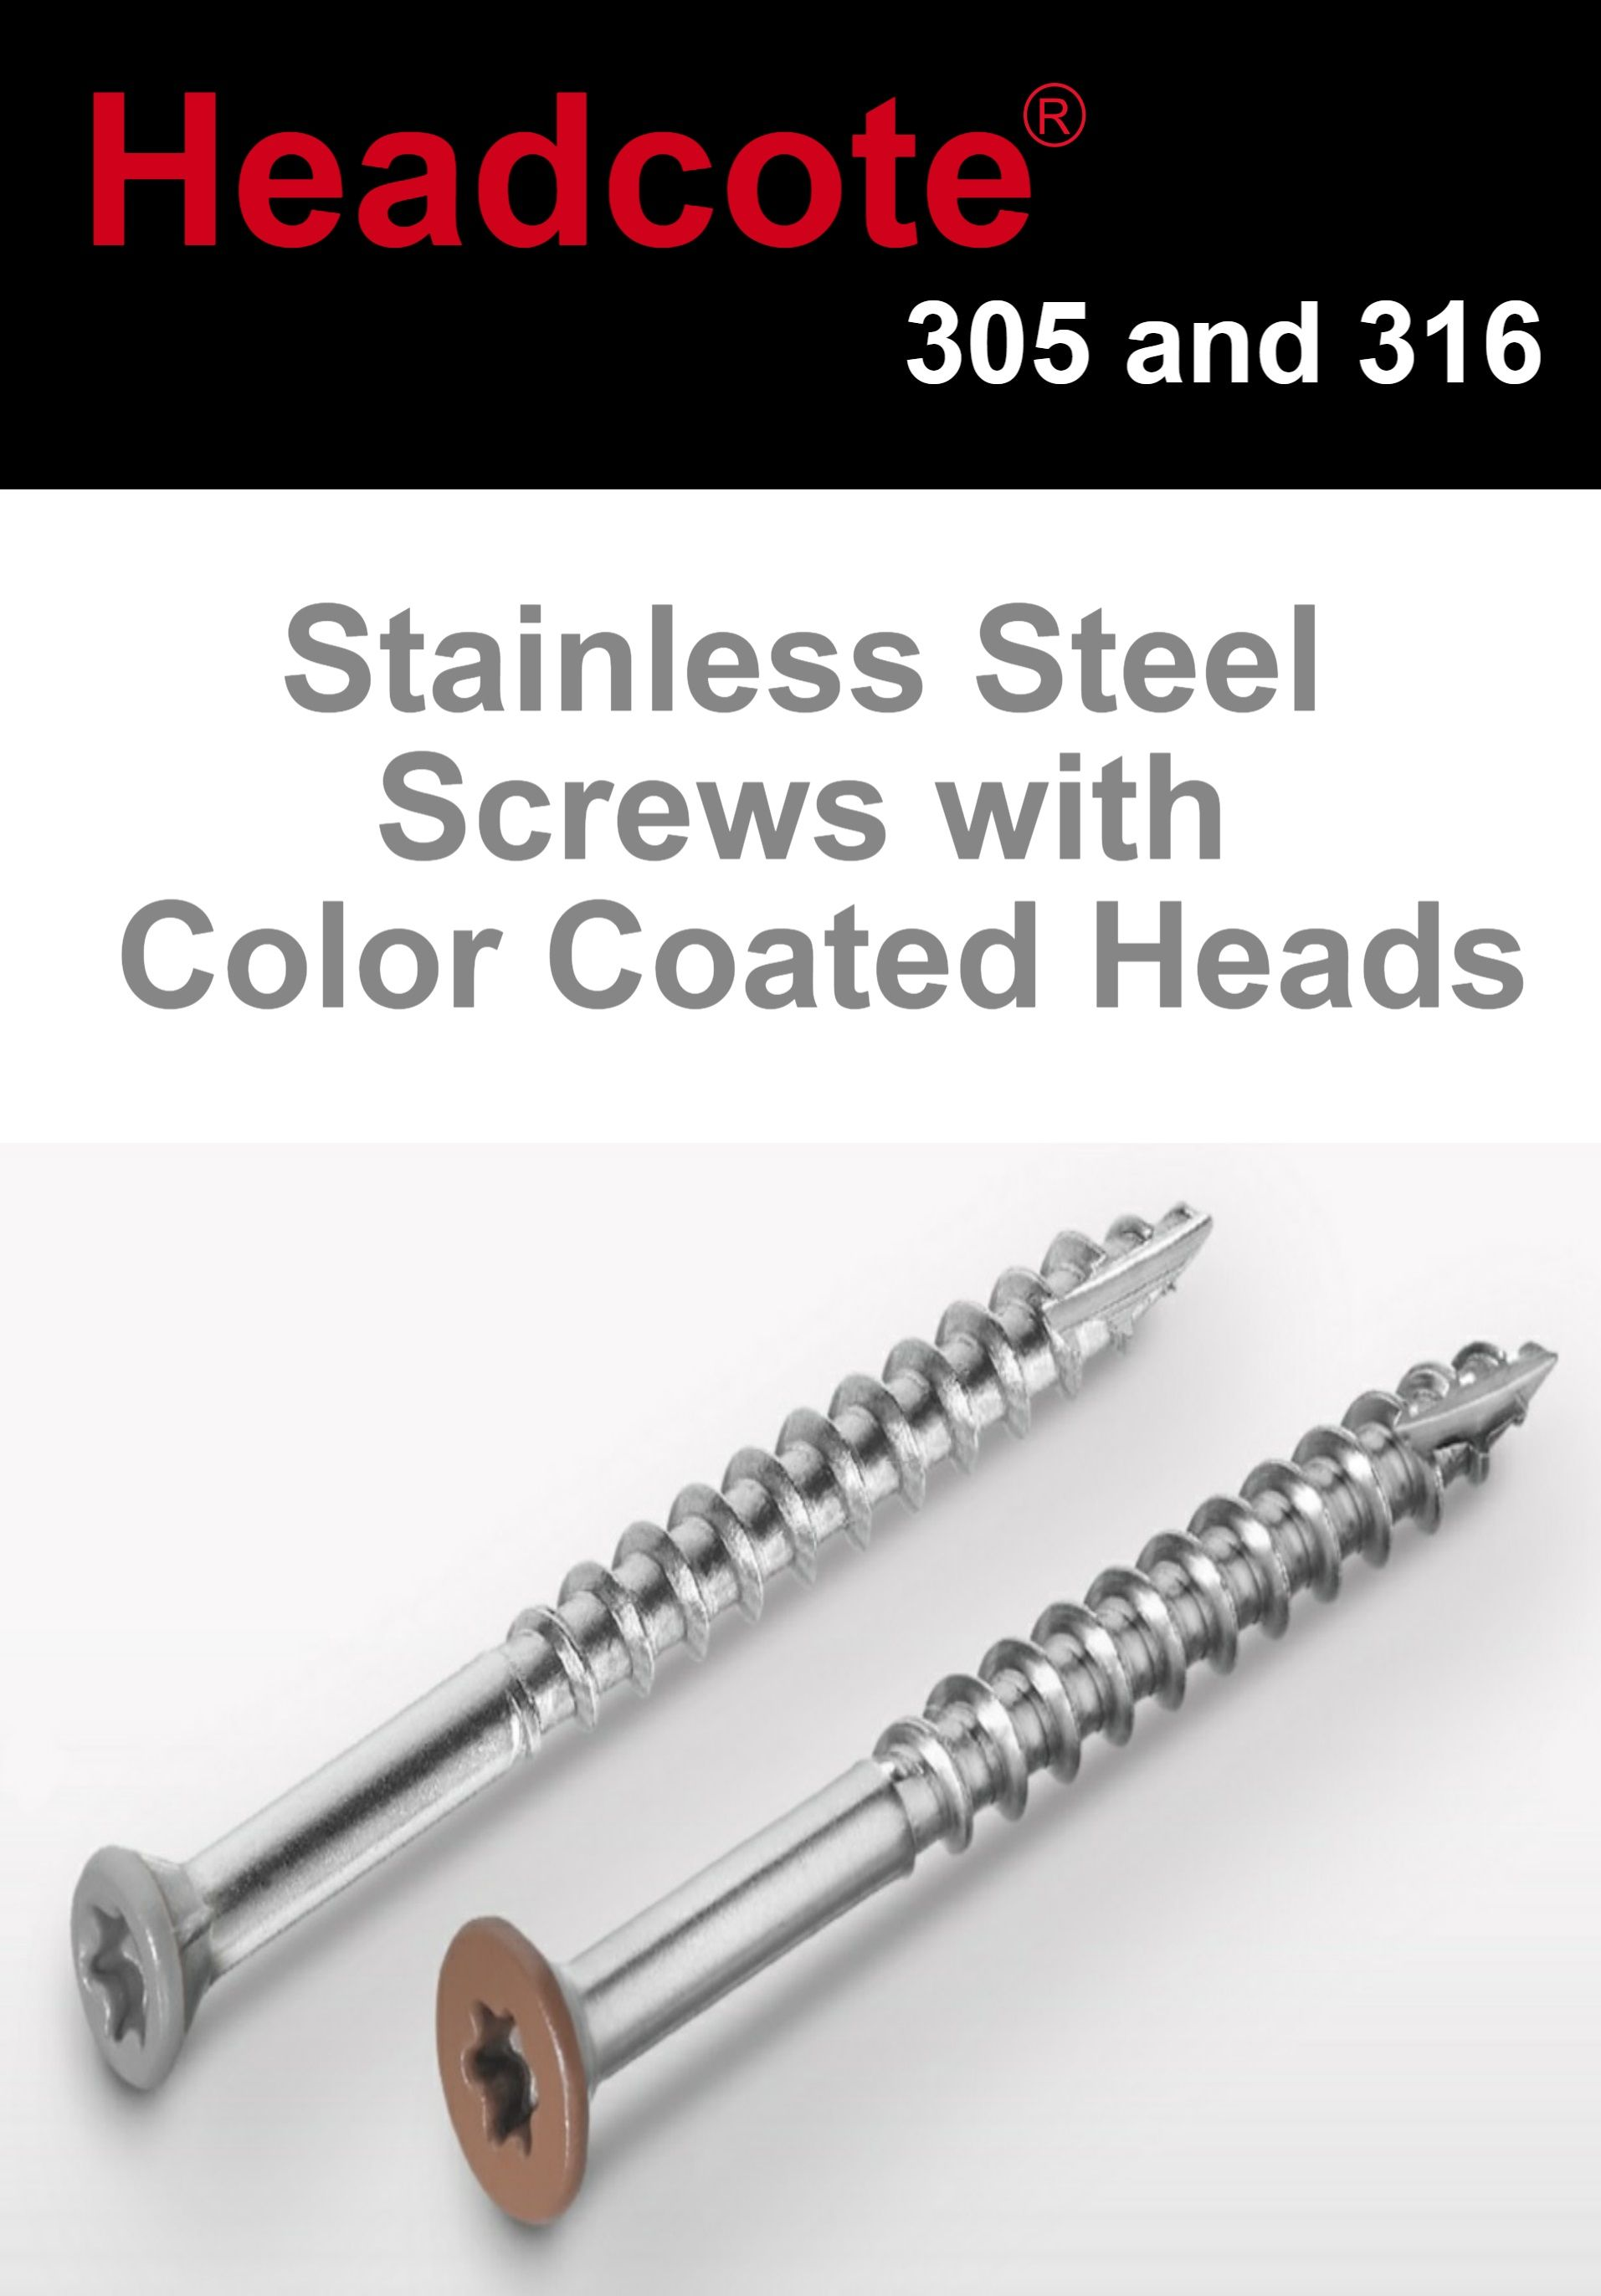 Decking Screws With Color Match Painted Heads Headcote In 305 And 316 Stainless Steel Available At Manasquan Decking Screws Manasquan Stainless Steel Screws